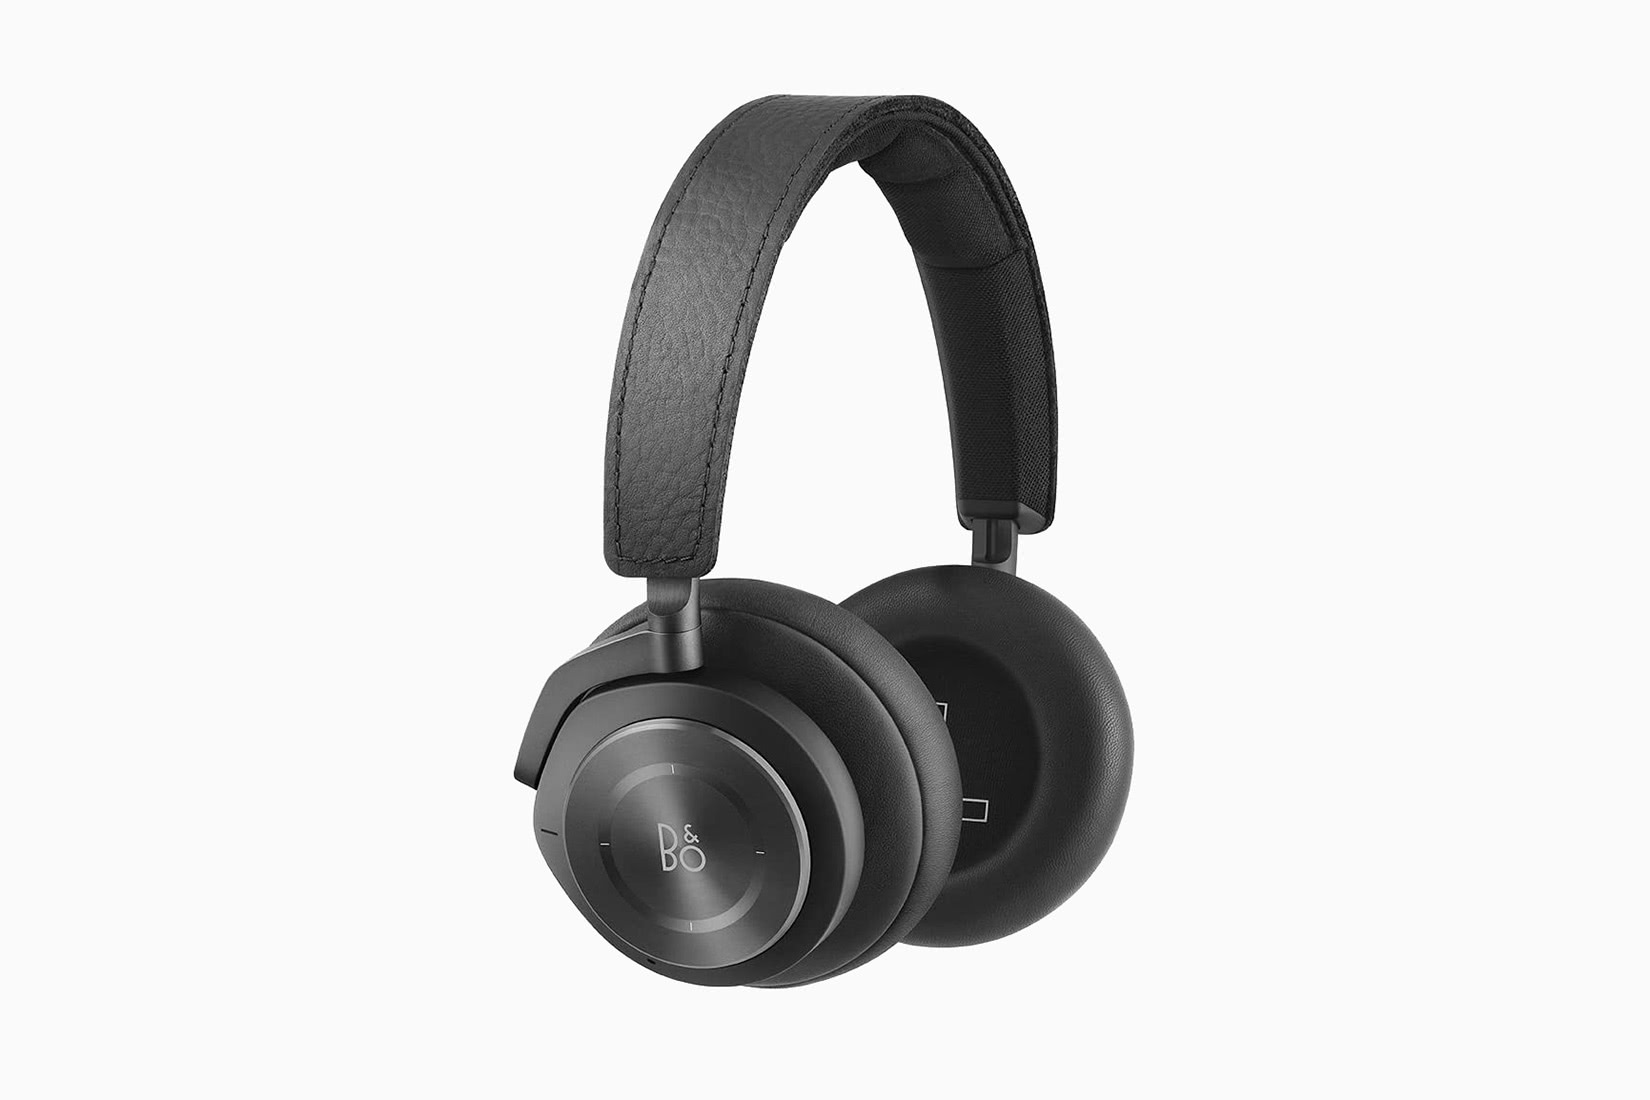 best over-ear headphones bang & olufsen beoplay H9i review - Luxe Digital